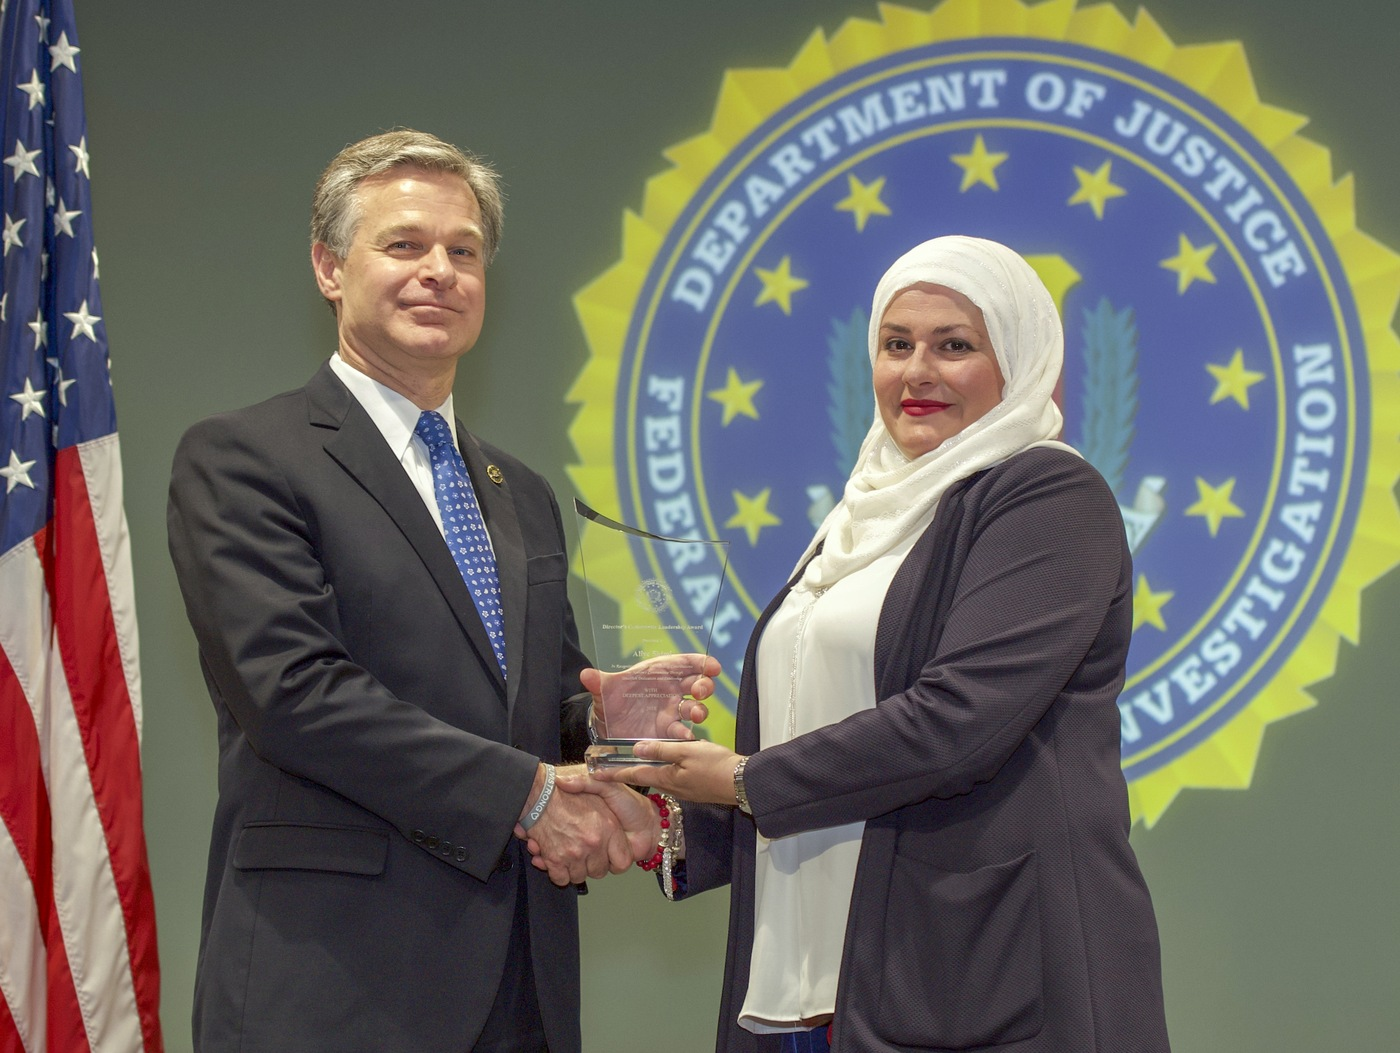 FBI Director Christopher Wray presents Oklahoma City Division recipient Aliye Shimi with the Director's Community Leadership Award (DCLA) at a ceremony at FBI Headquarters on May 3, 2019.